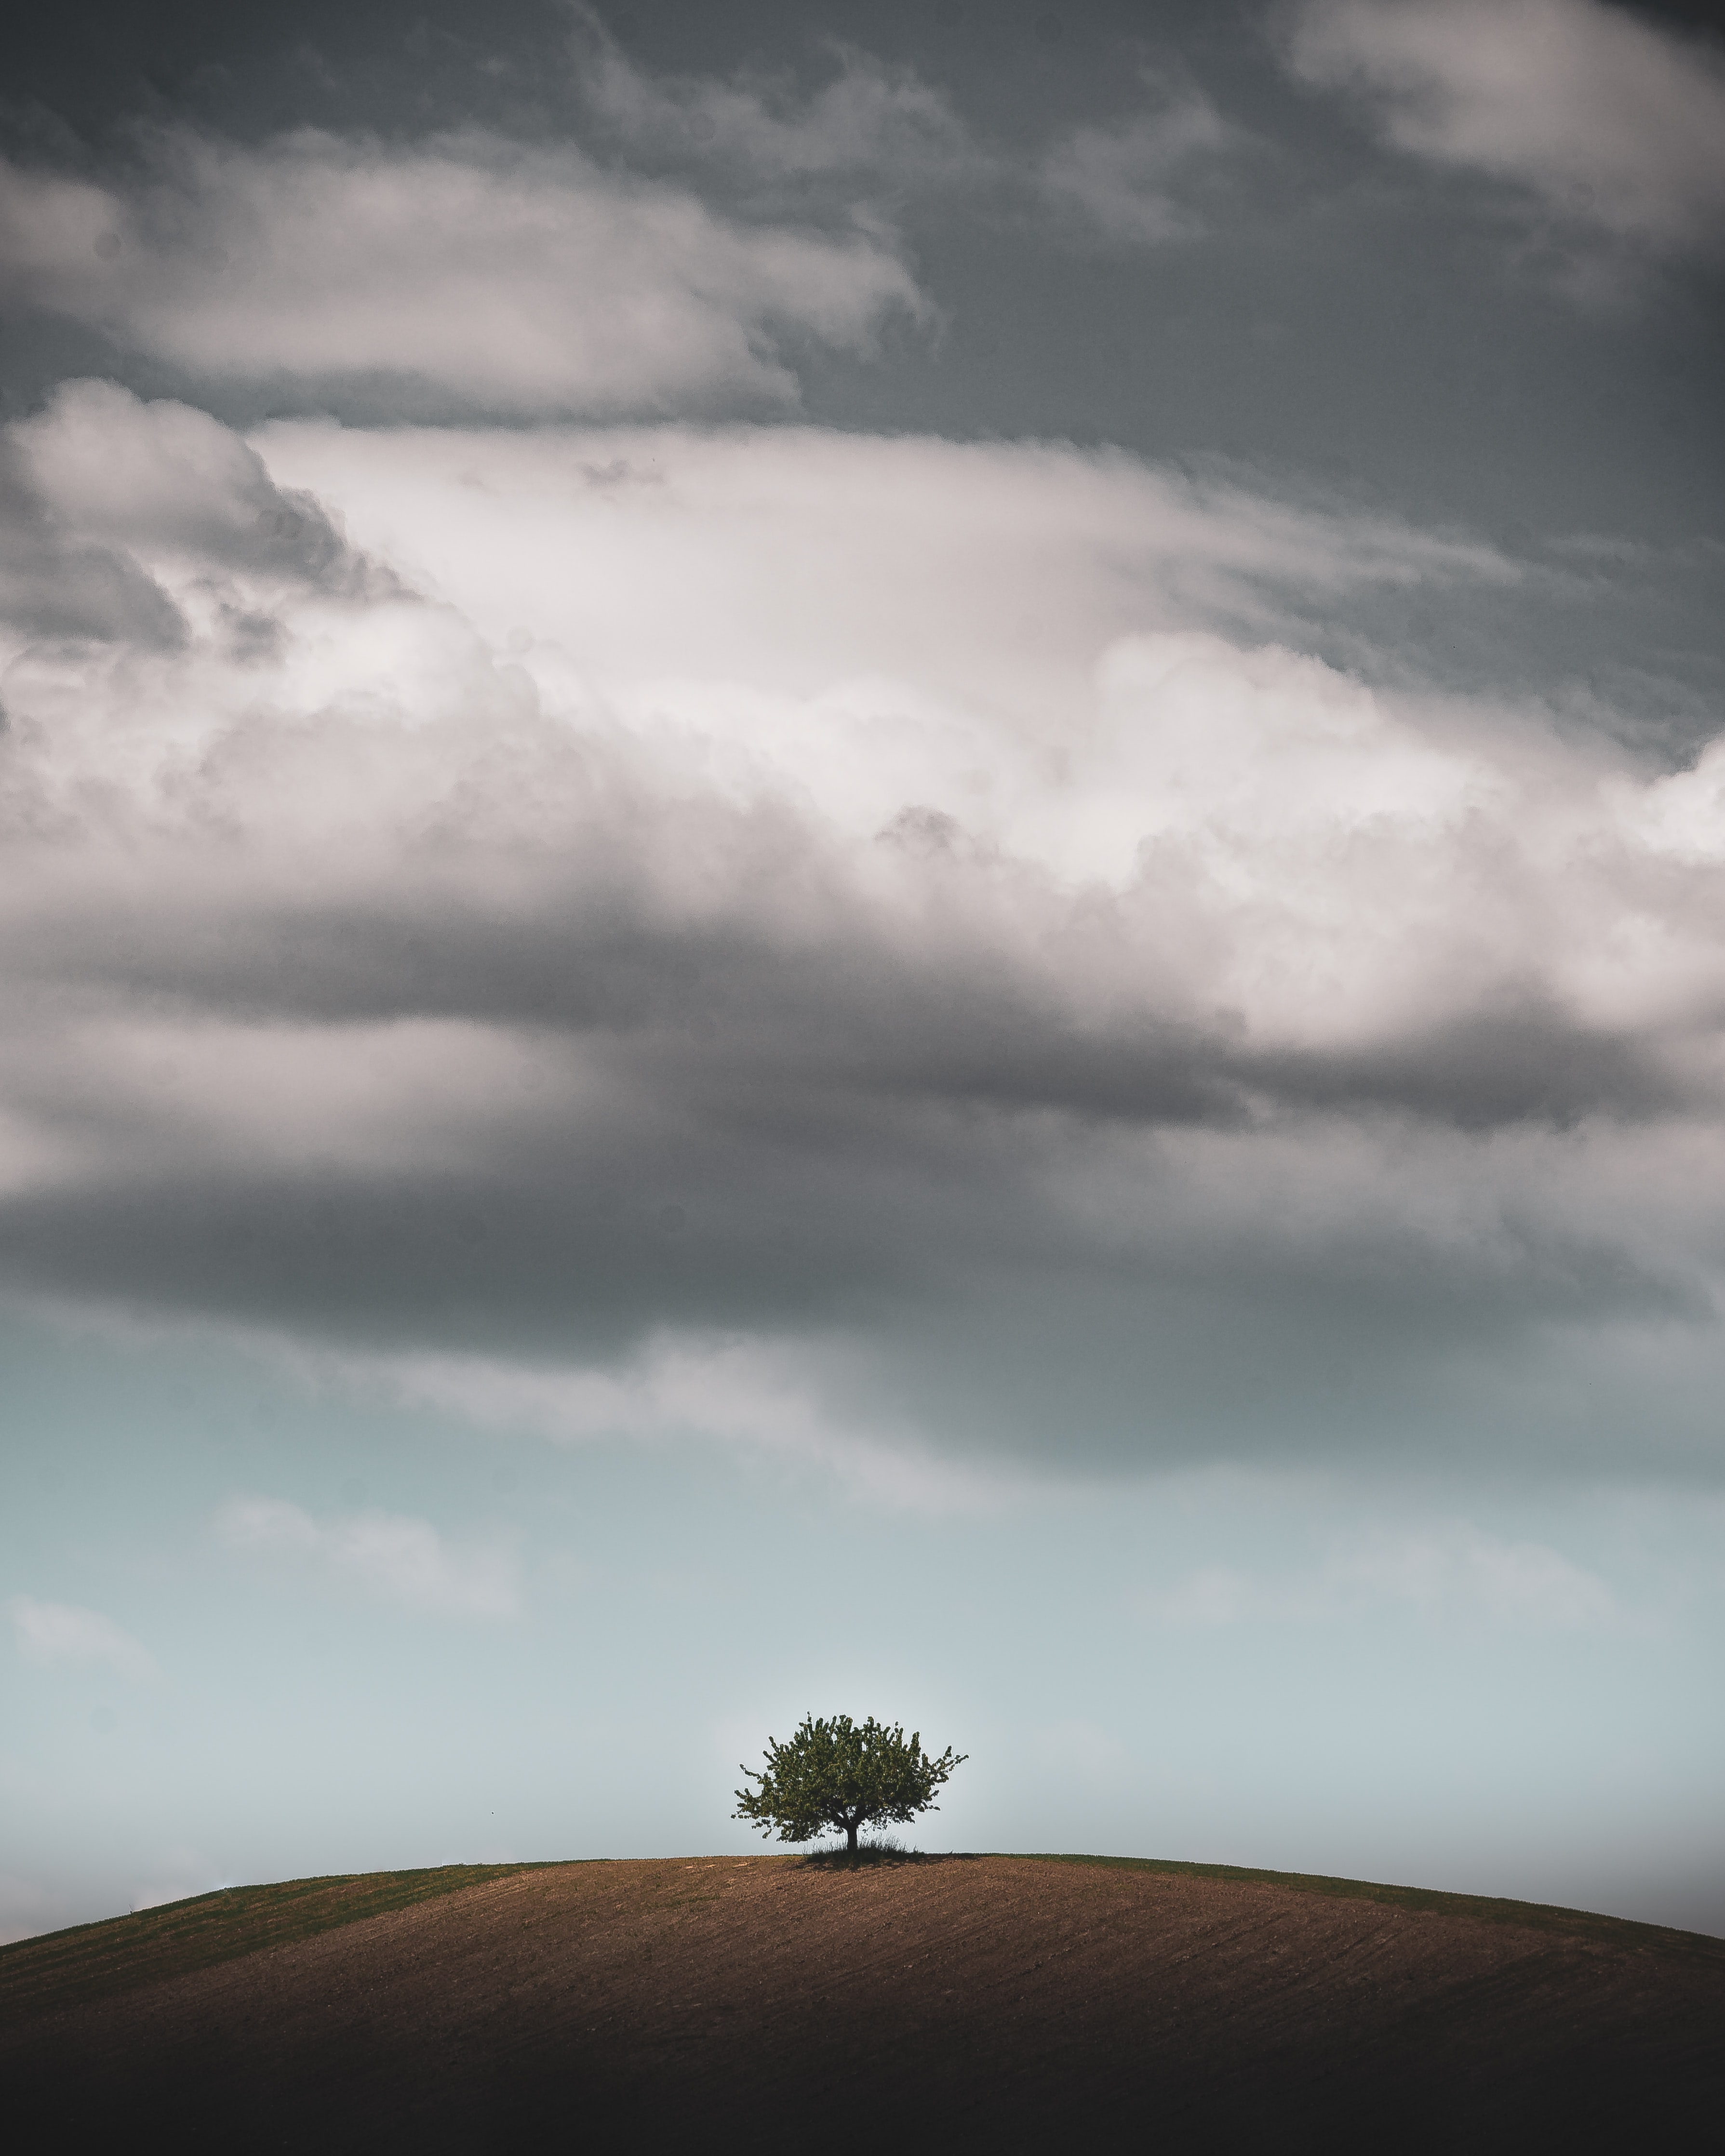 Lone tree stands on hill with dark skies above